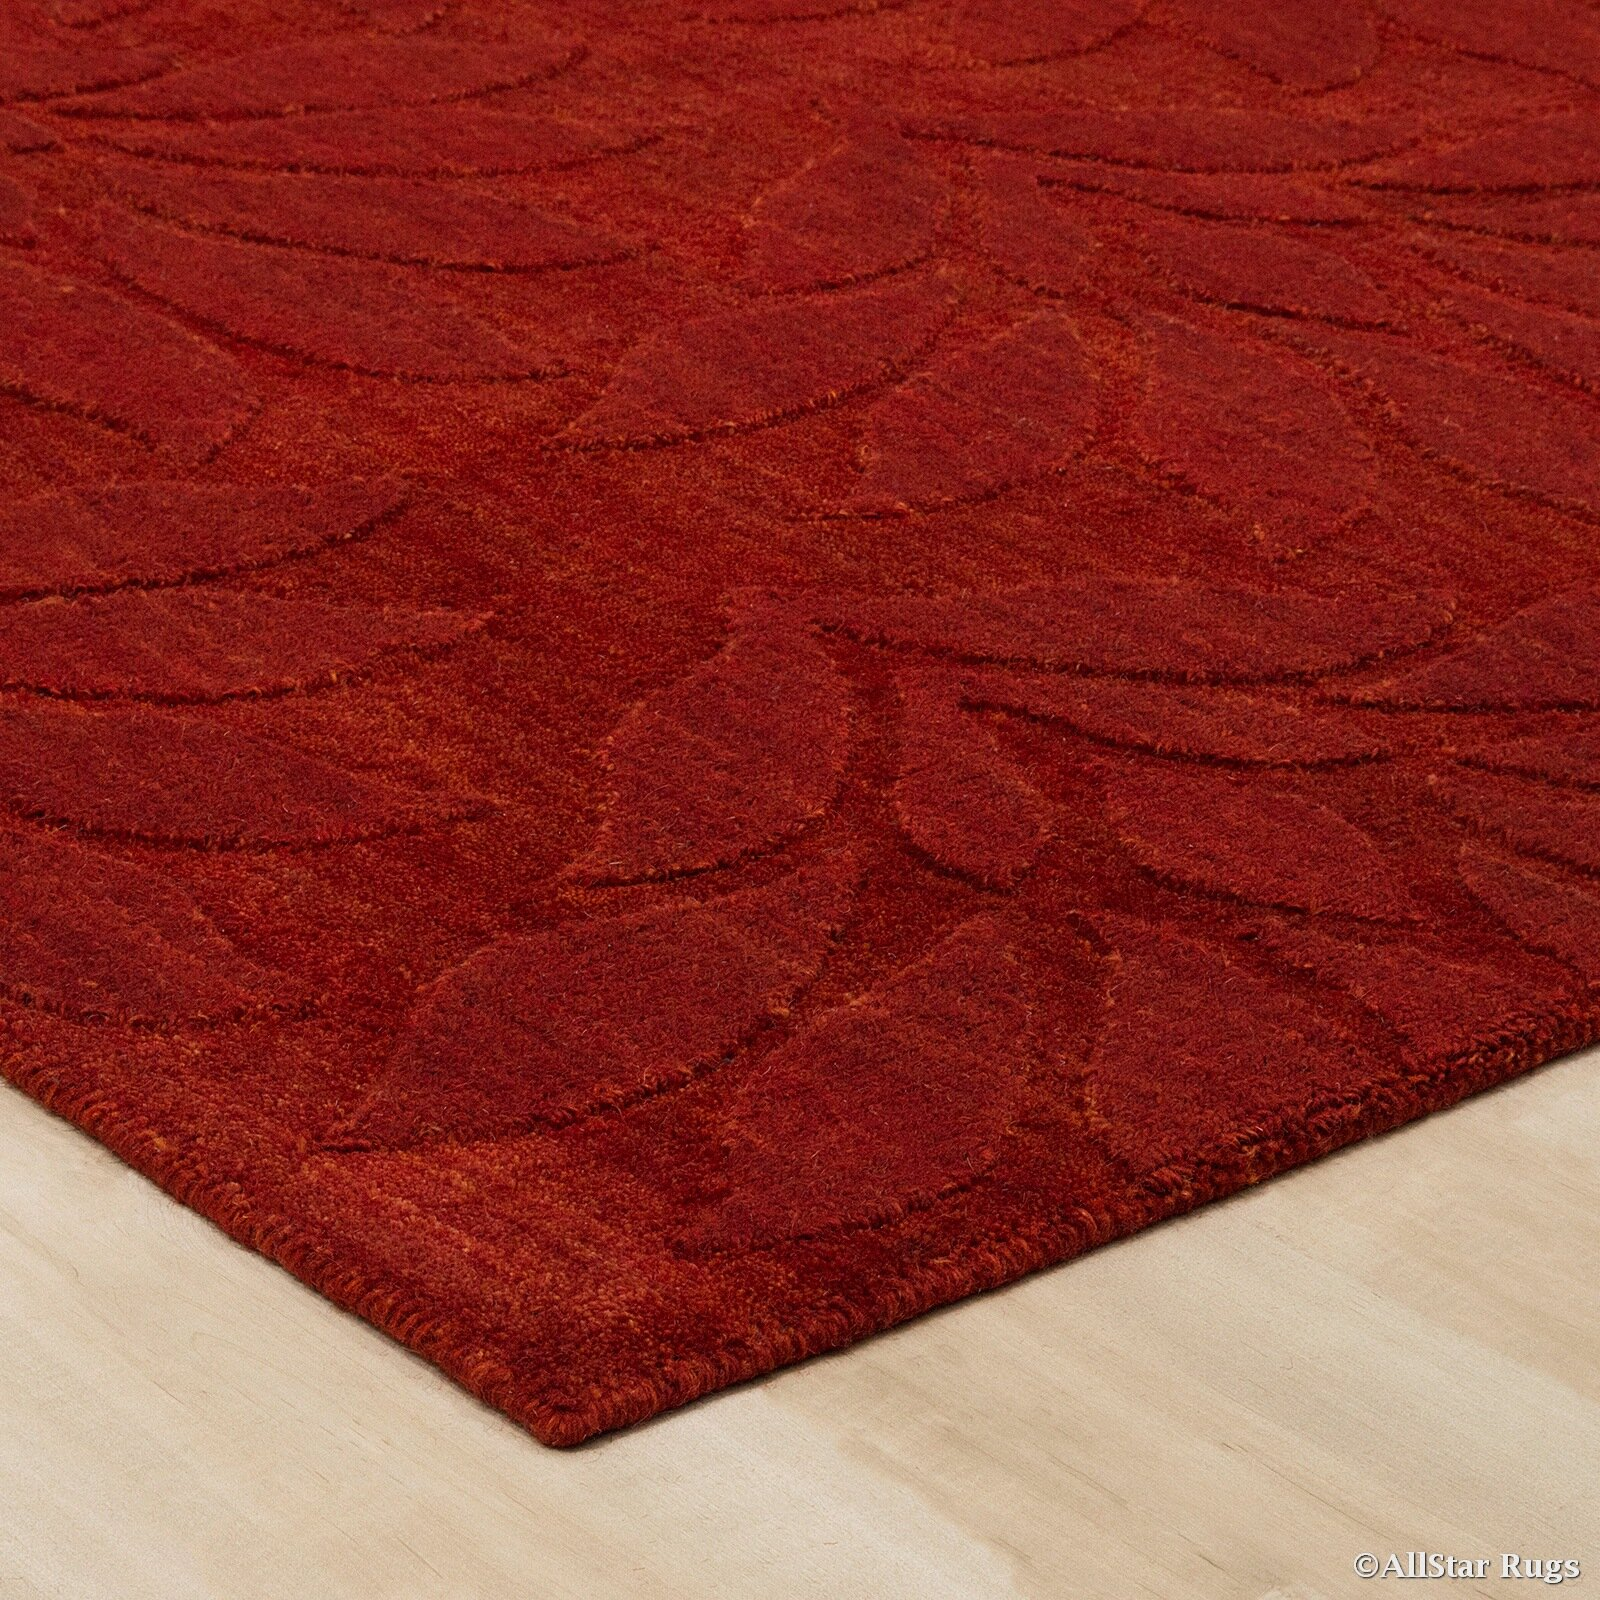 allstar rugs hand woven red area rug wayfair